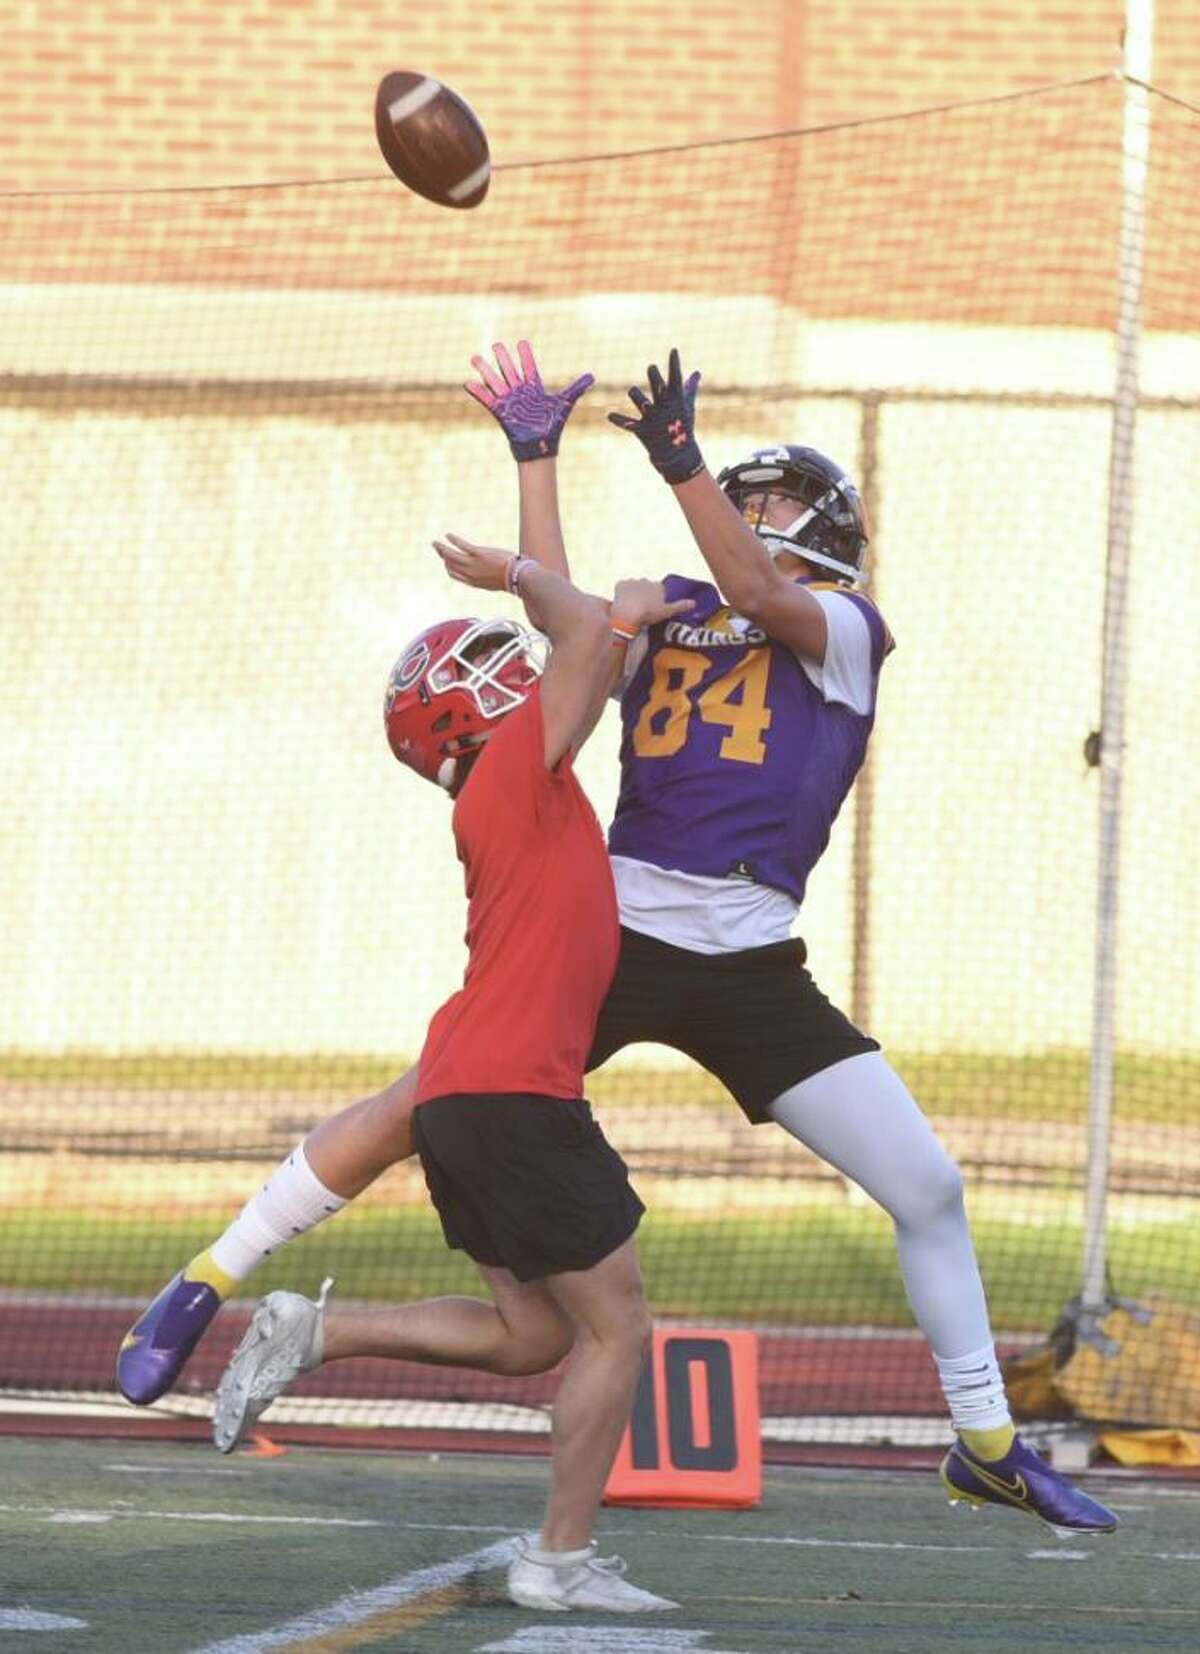 Westhill's Ryder Kurtz (84) goes up to make a reception during the Vikings' 7-on-7 football game versus New Canaan at Westhill on Friday, Oct. 9, 2020.